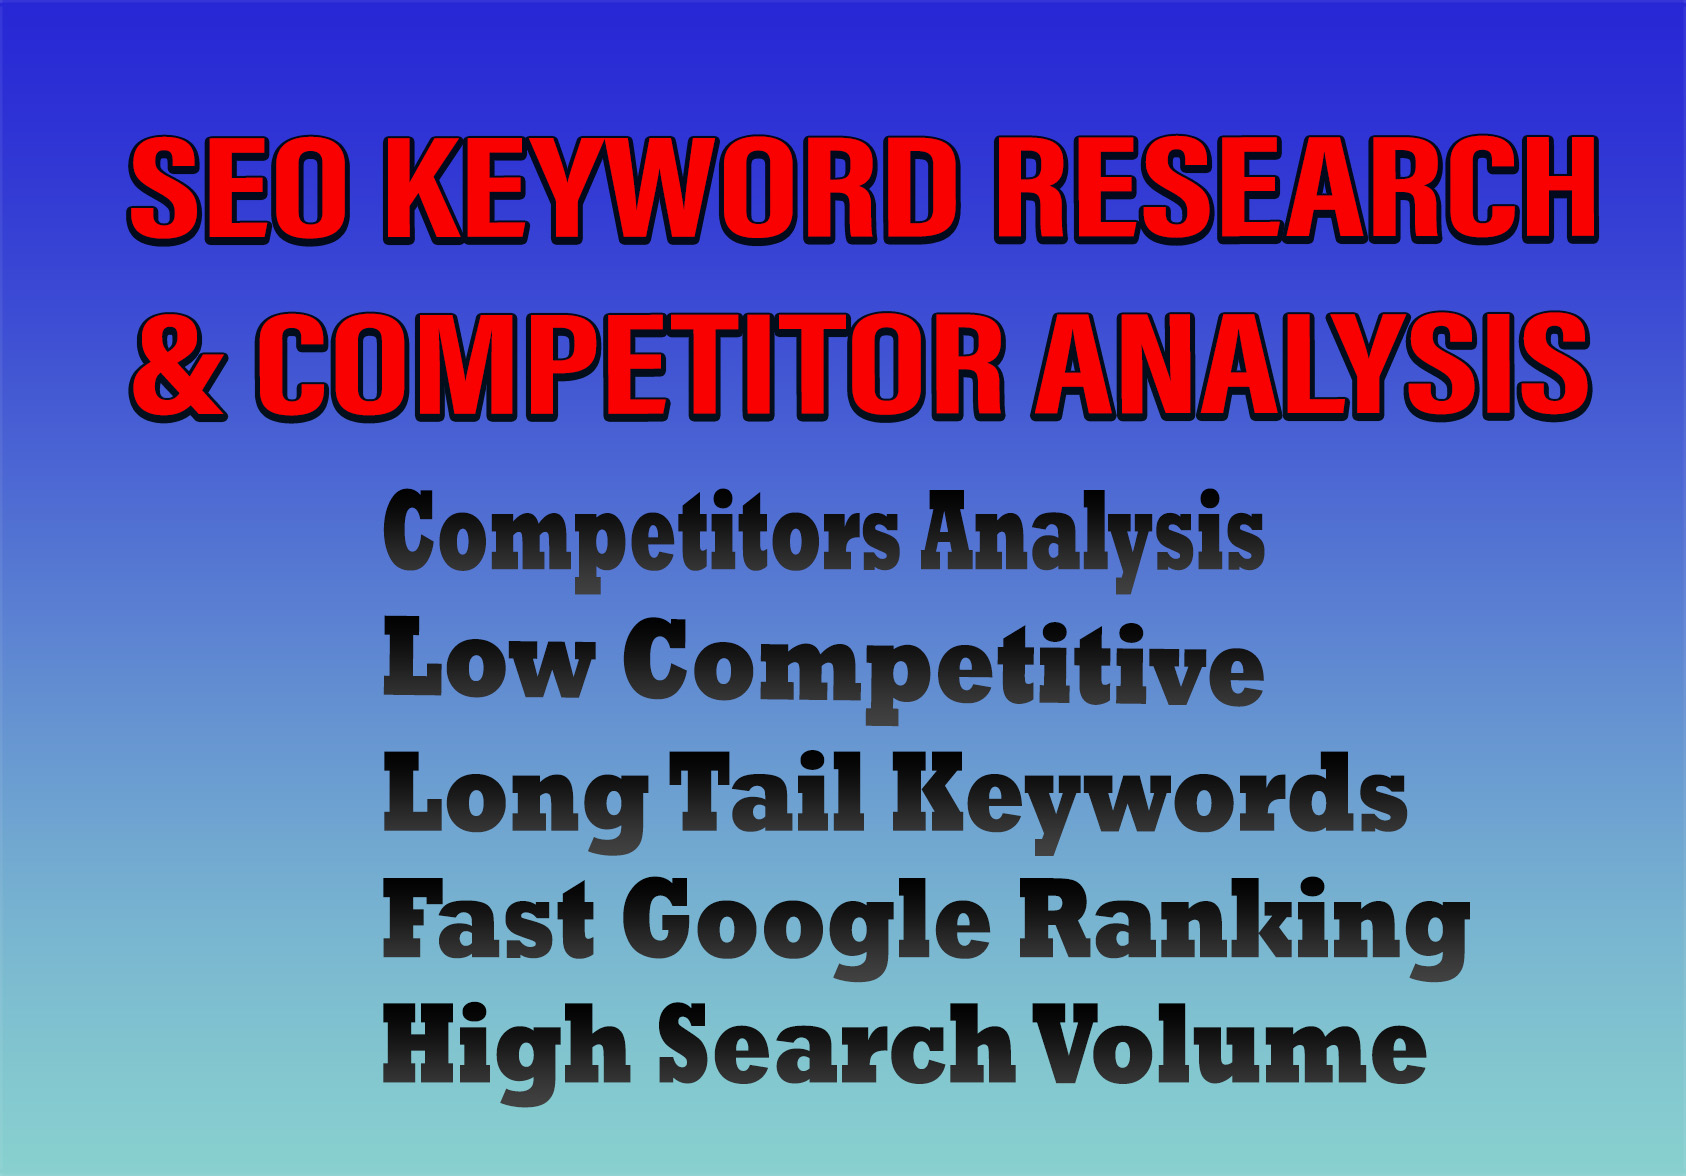 Do excellent SEO keyword research and competitors analysis to rank your site fast